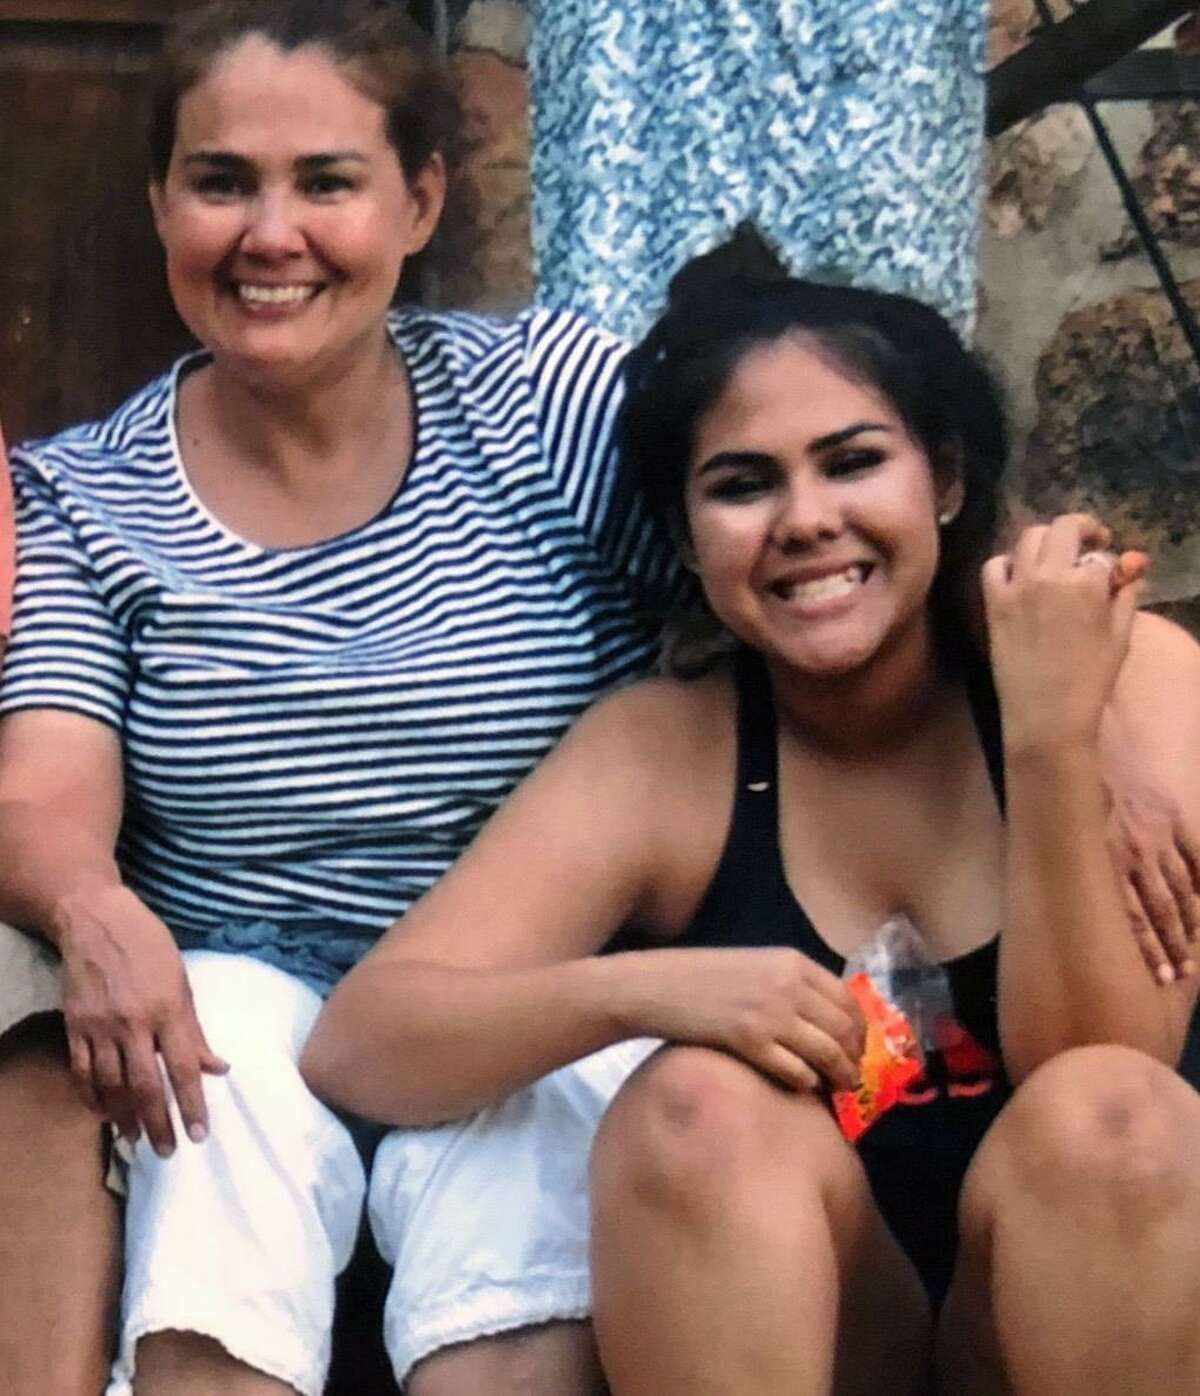 Rena Castro, left, is seen with her daughter, Erin Castro, in an undated photo. Erin Castro was killed Sept. 2, 2018, and her boyfriend, Josh Garcia, has bene charged with murder.